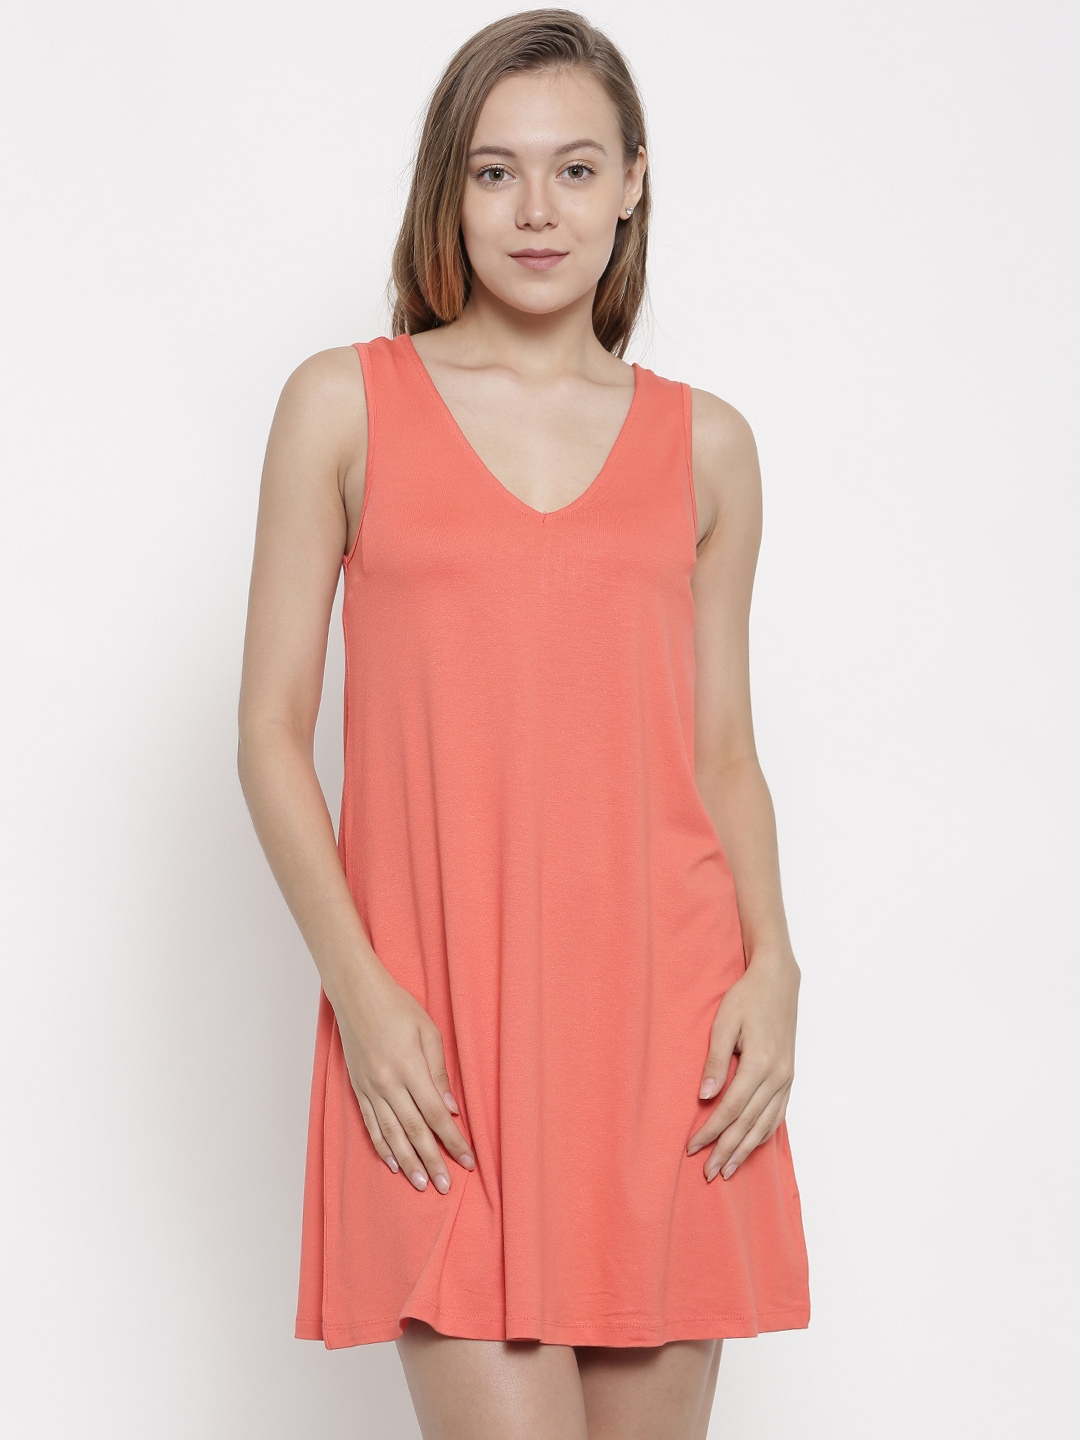 pink woman Coral Pink Solid A-Line Dress image